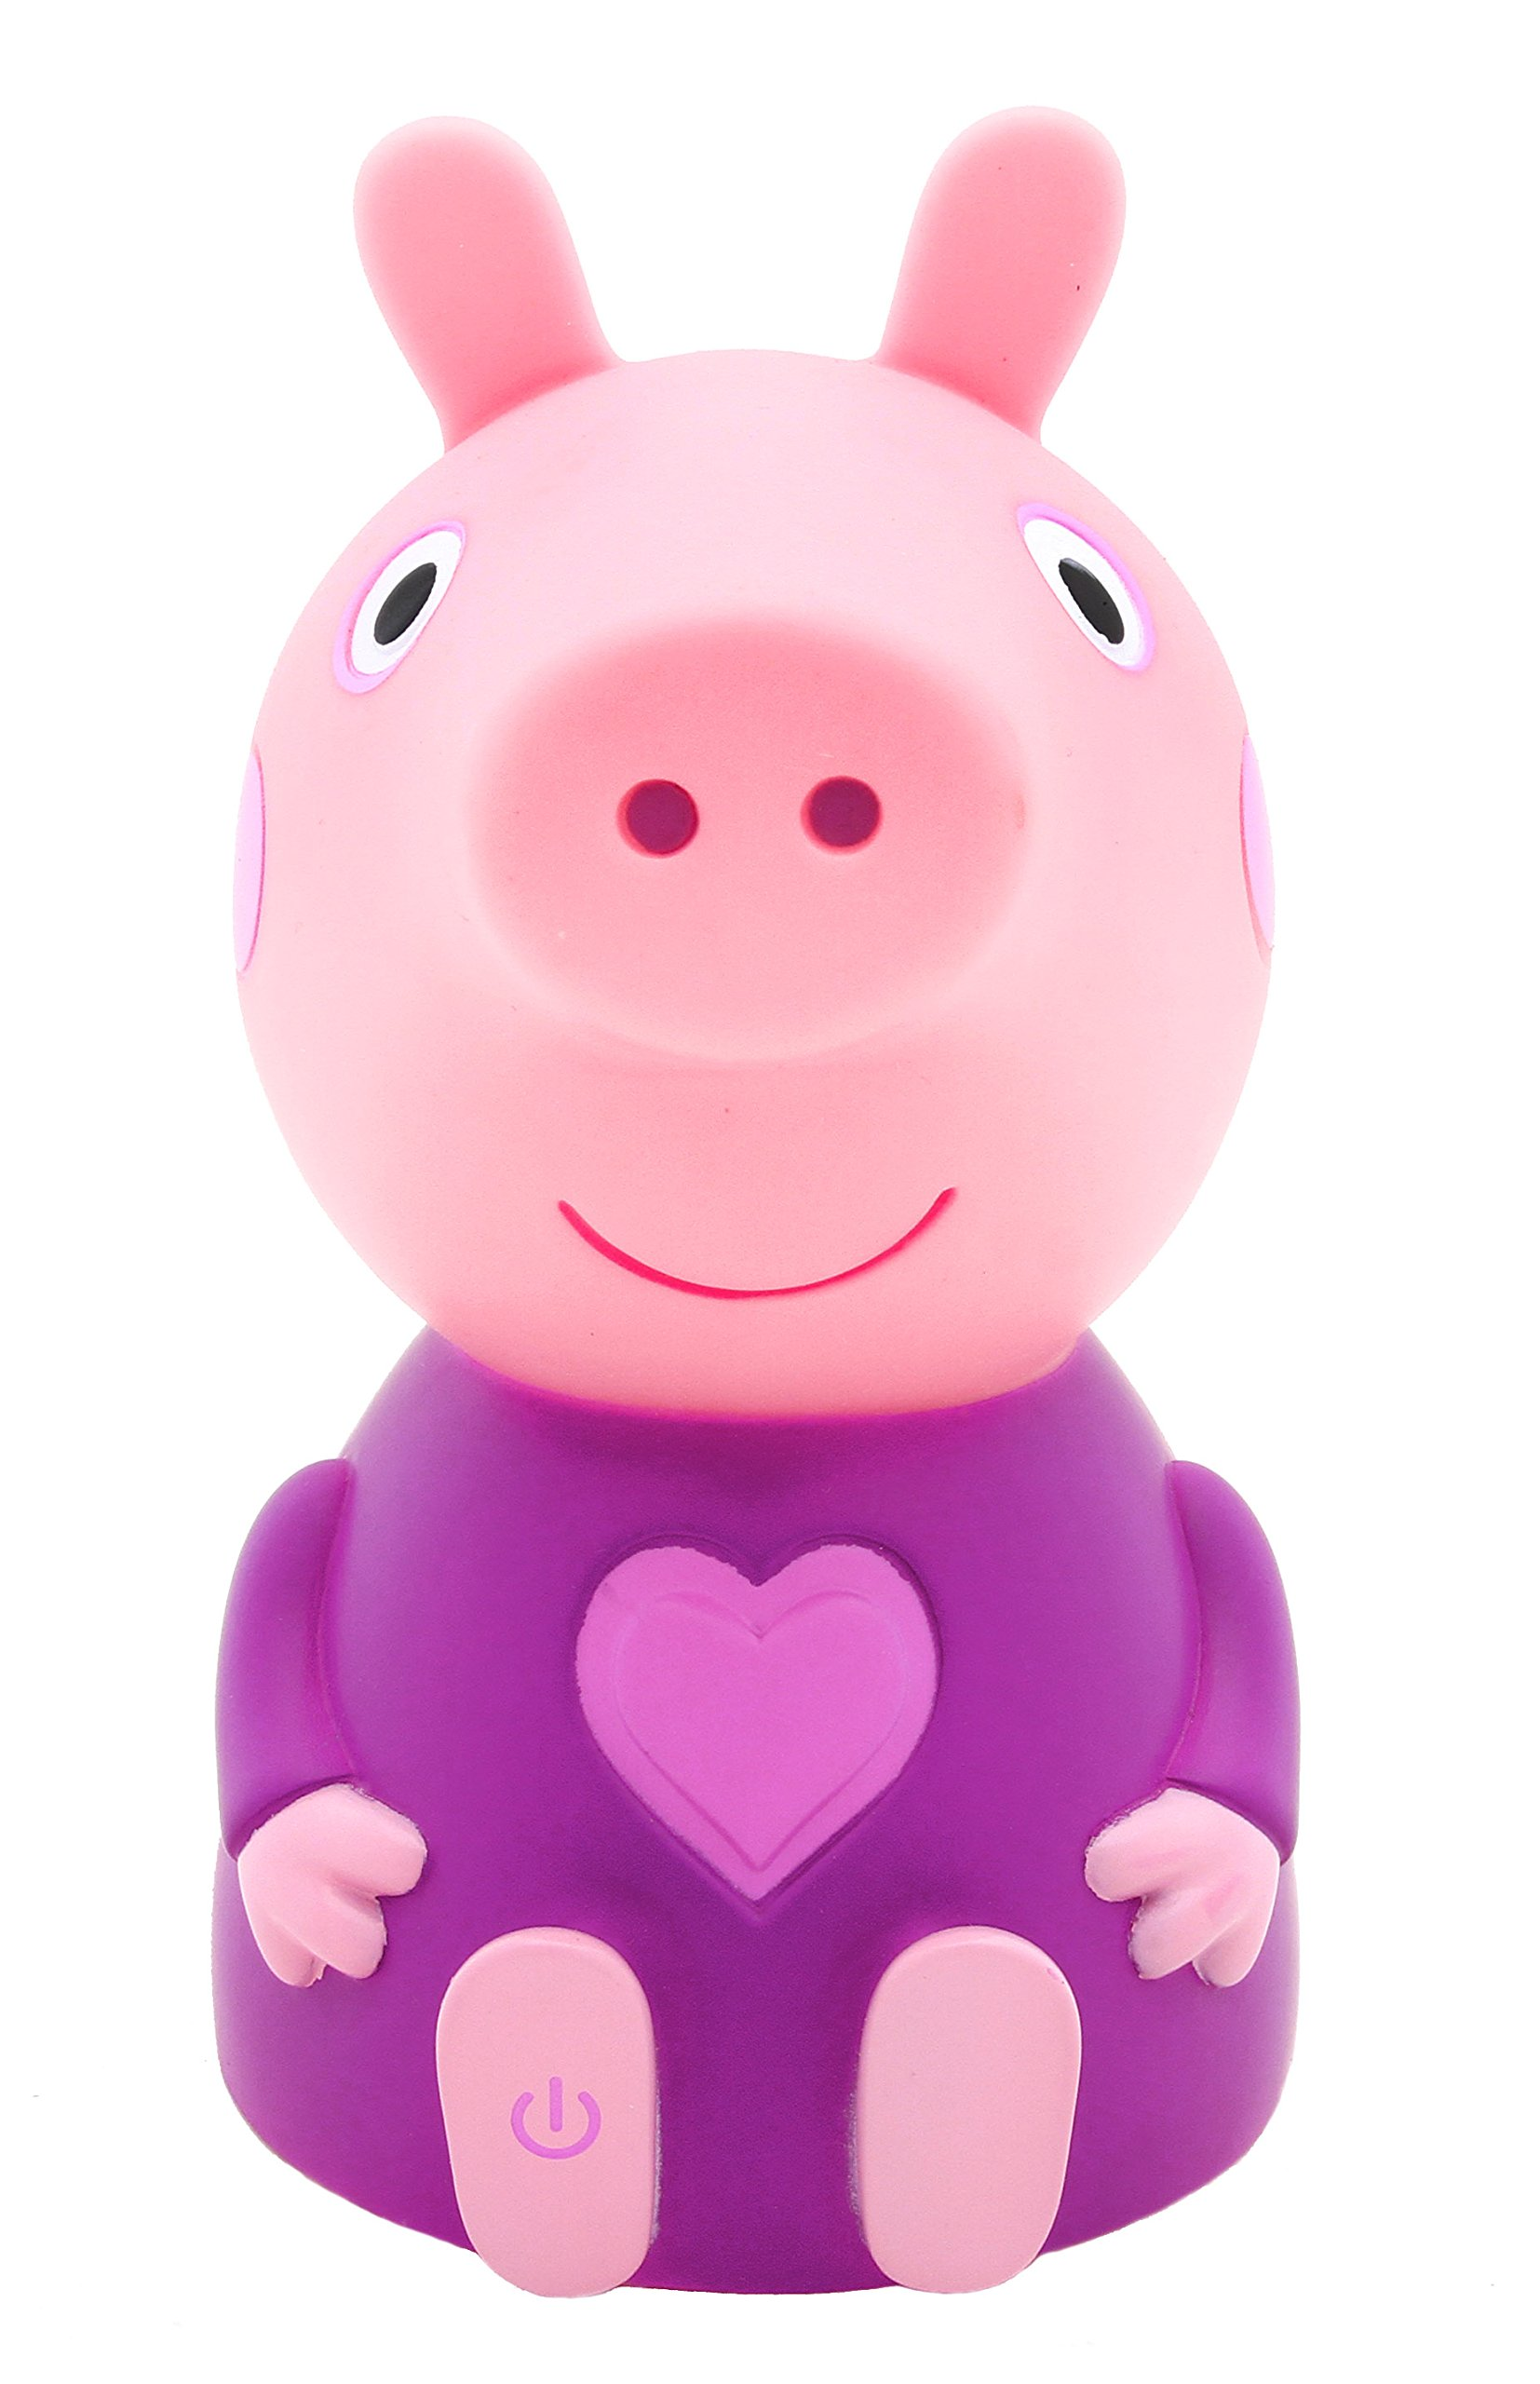 Peppa Pig Night Light - Peppa - Soft and Portable Light-Up Toy by Peppa Pig